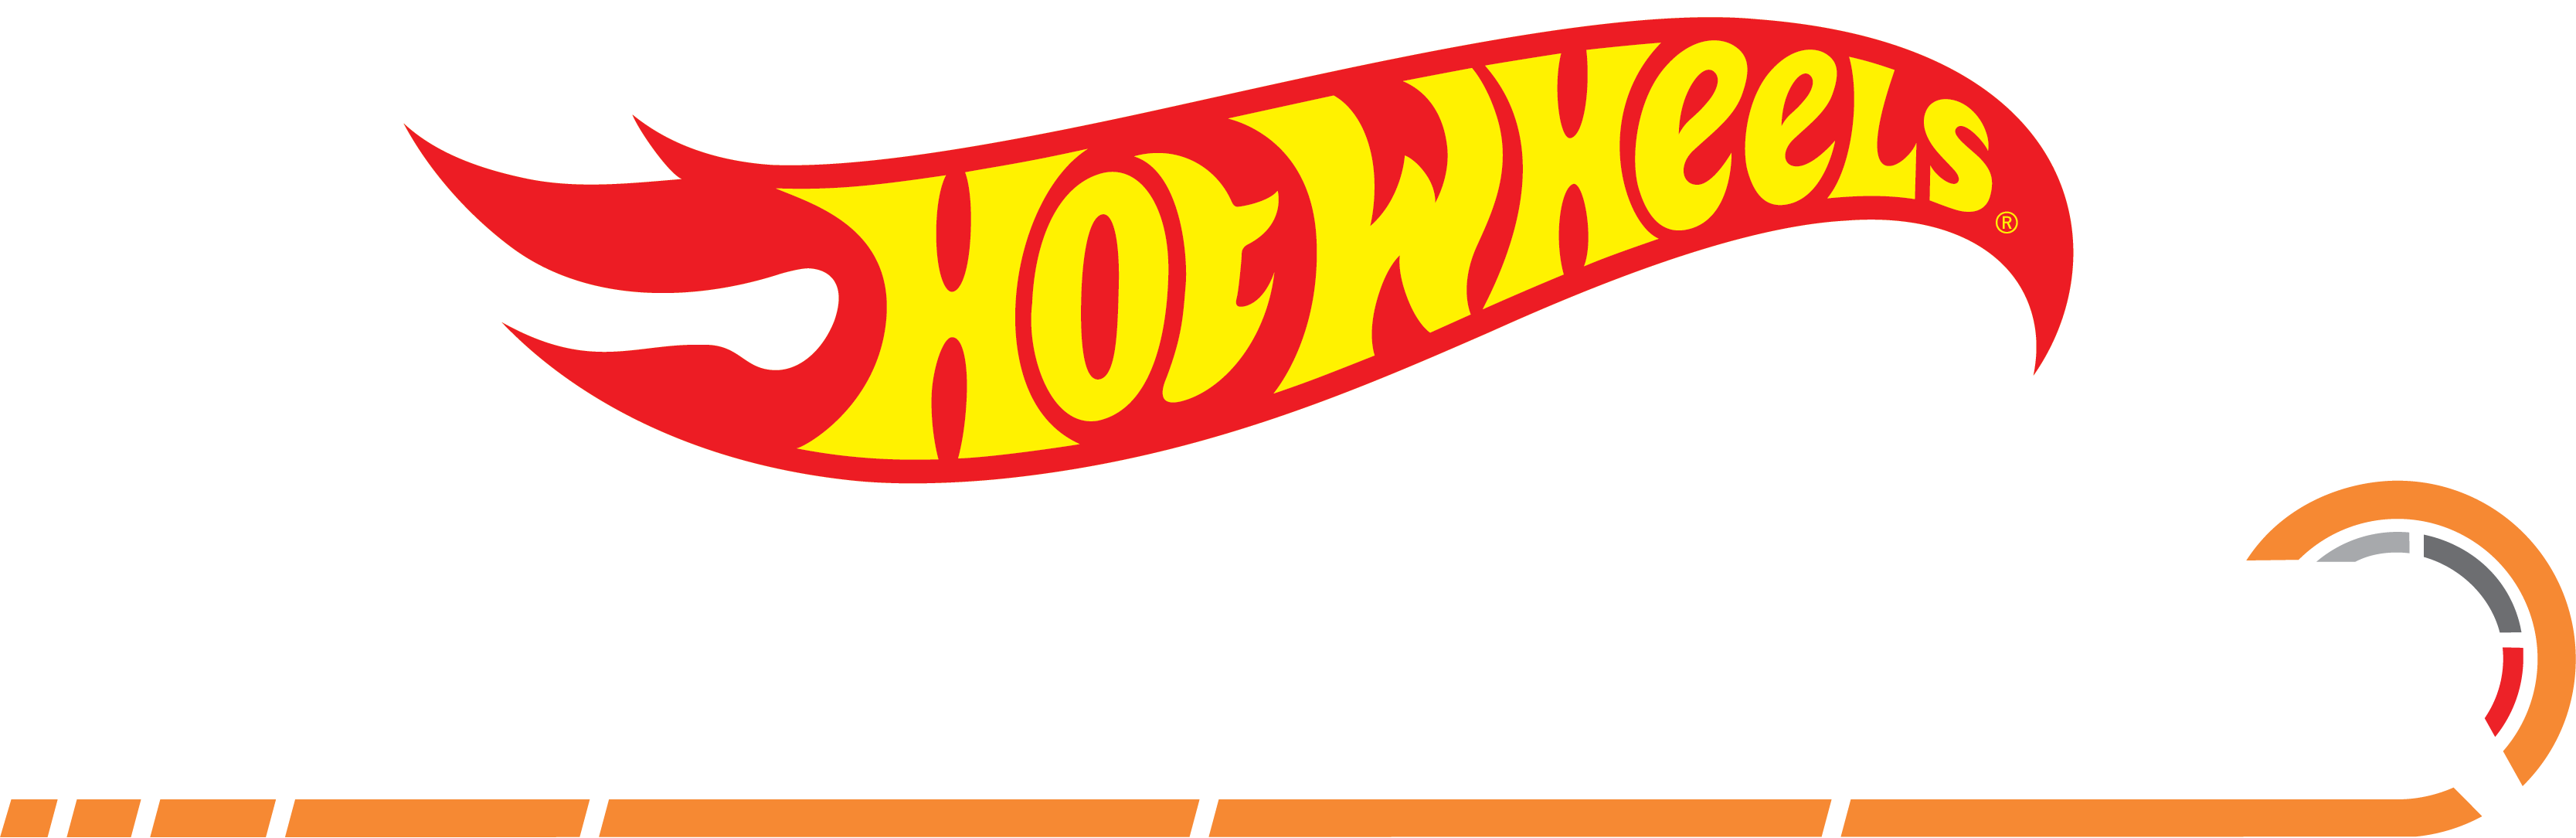 The Hot Wheels® logo above text 'Speedometry' represented with a rev meter.